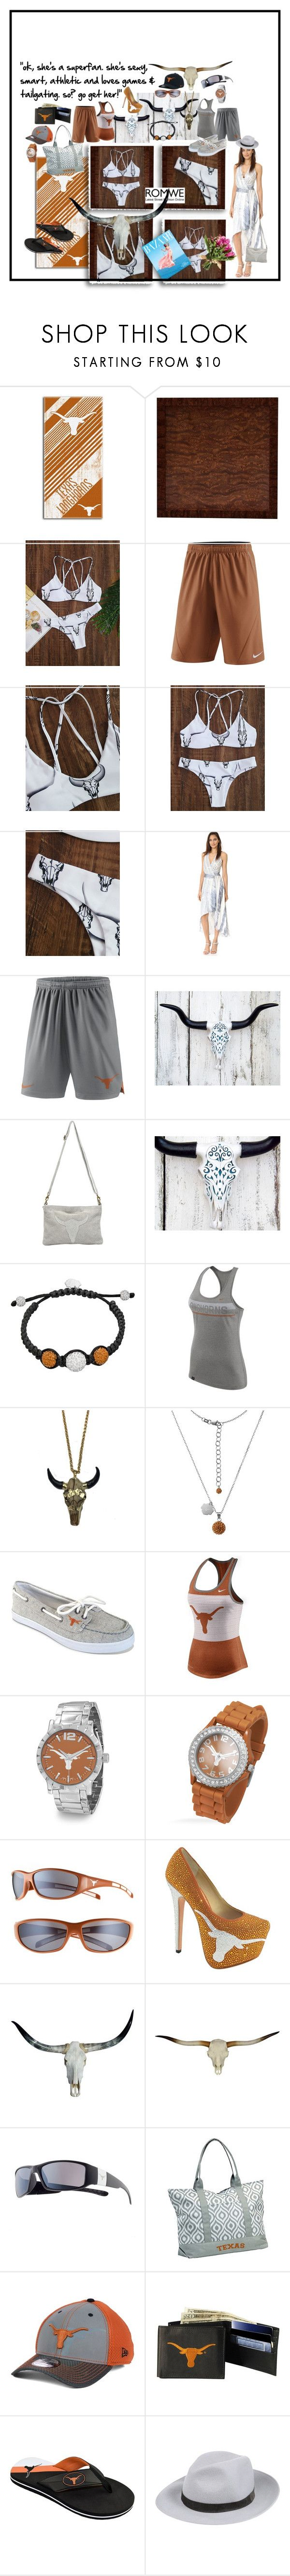 """skull bikini pattern"" by caroline-buster-brown ❤ liked on Polyvore featuring The Northwest Company, NIKE, Haute Hippie, Zara Taylor, Ball, Herstar, Renwil, New Era, College Edition and FABIANA FILIPPI"